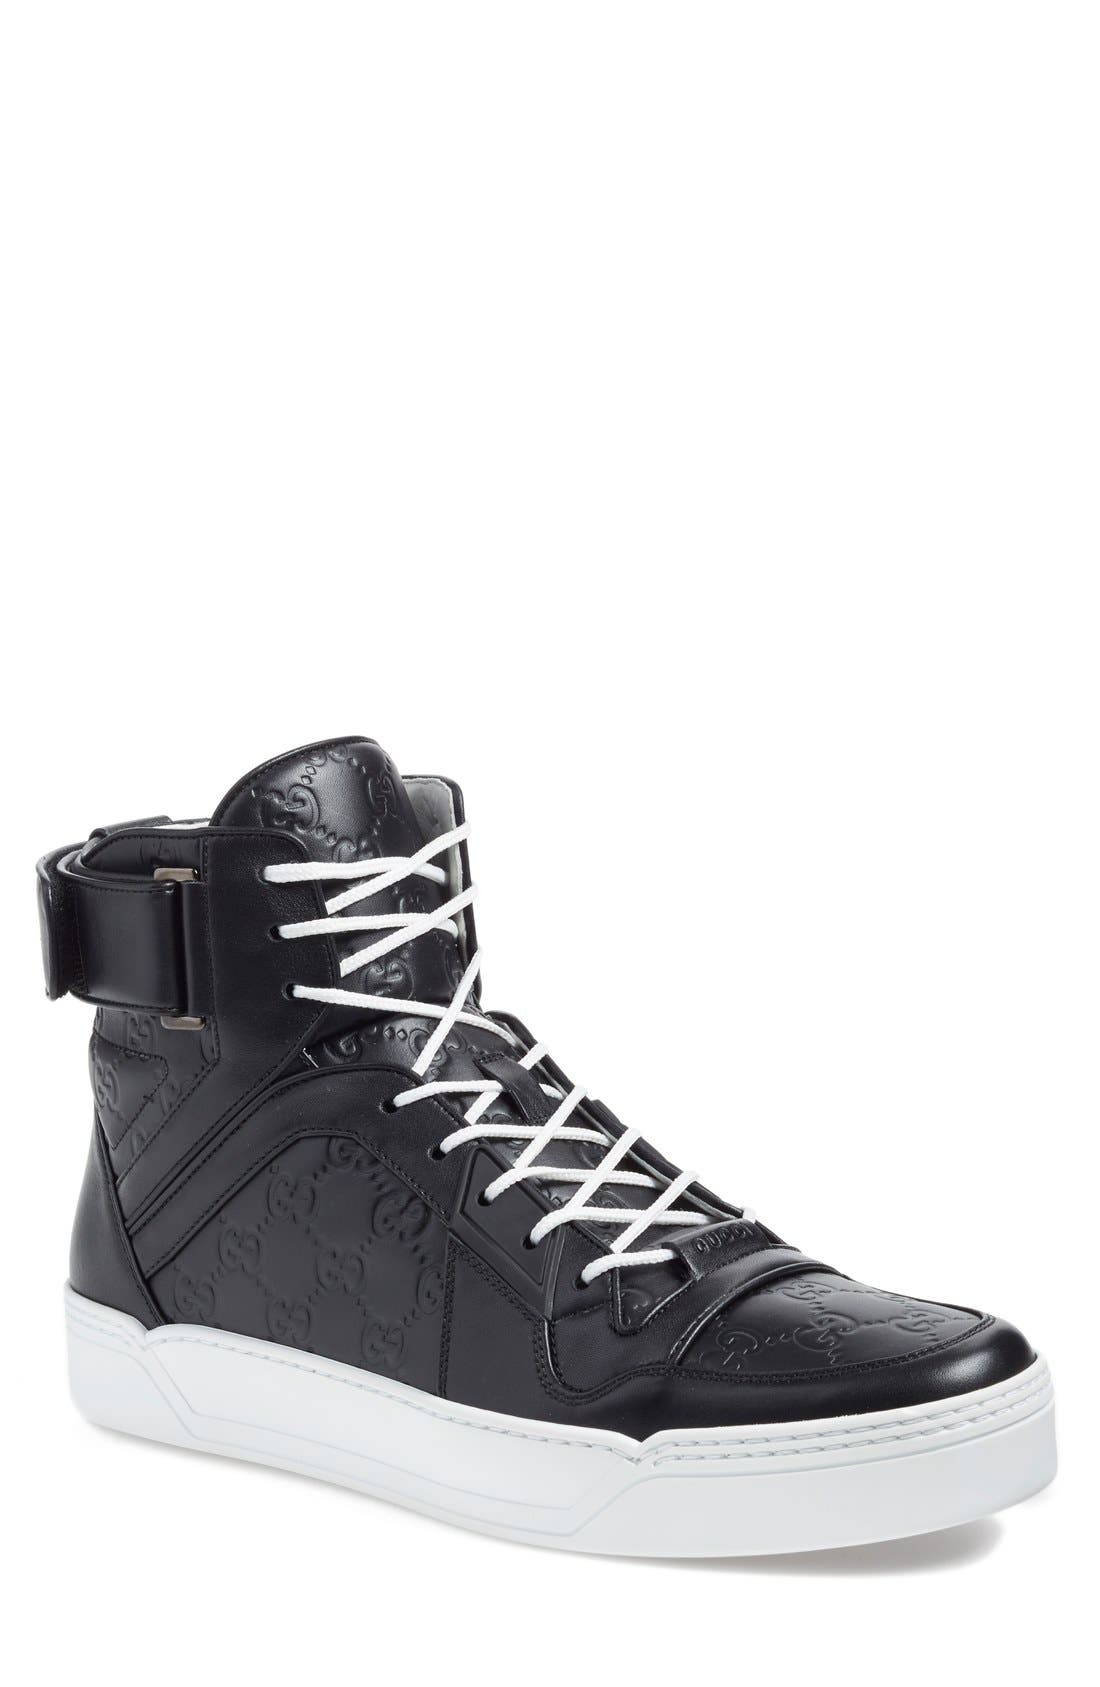 GUCCI,                             'New Basketball' High Top Sneaker,                             Main thumbnail 1, color,                             002